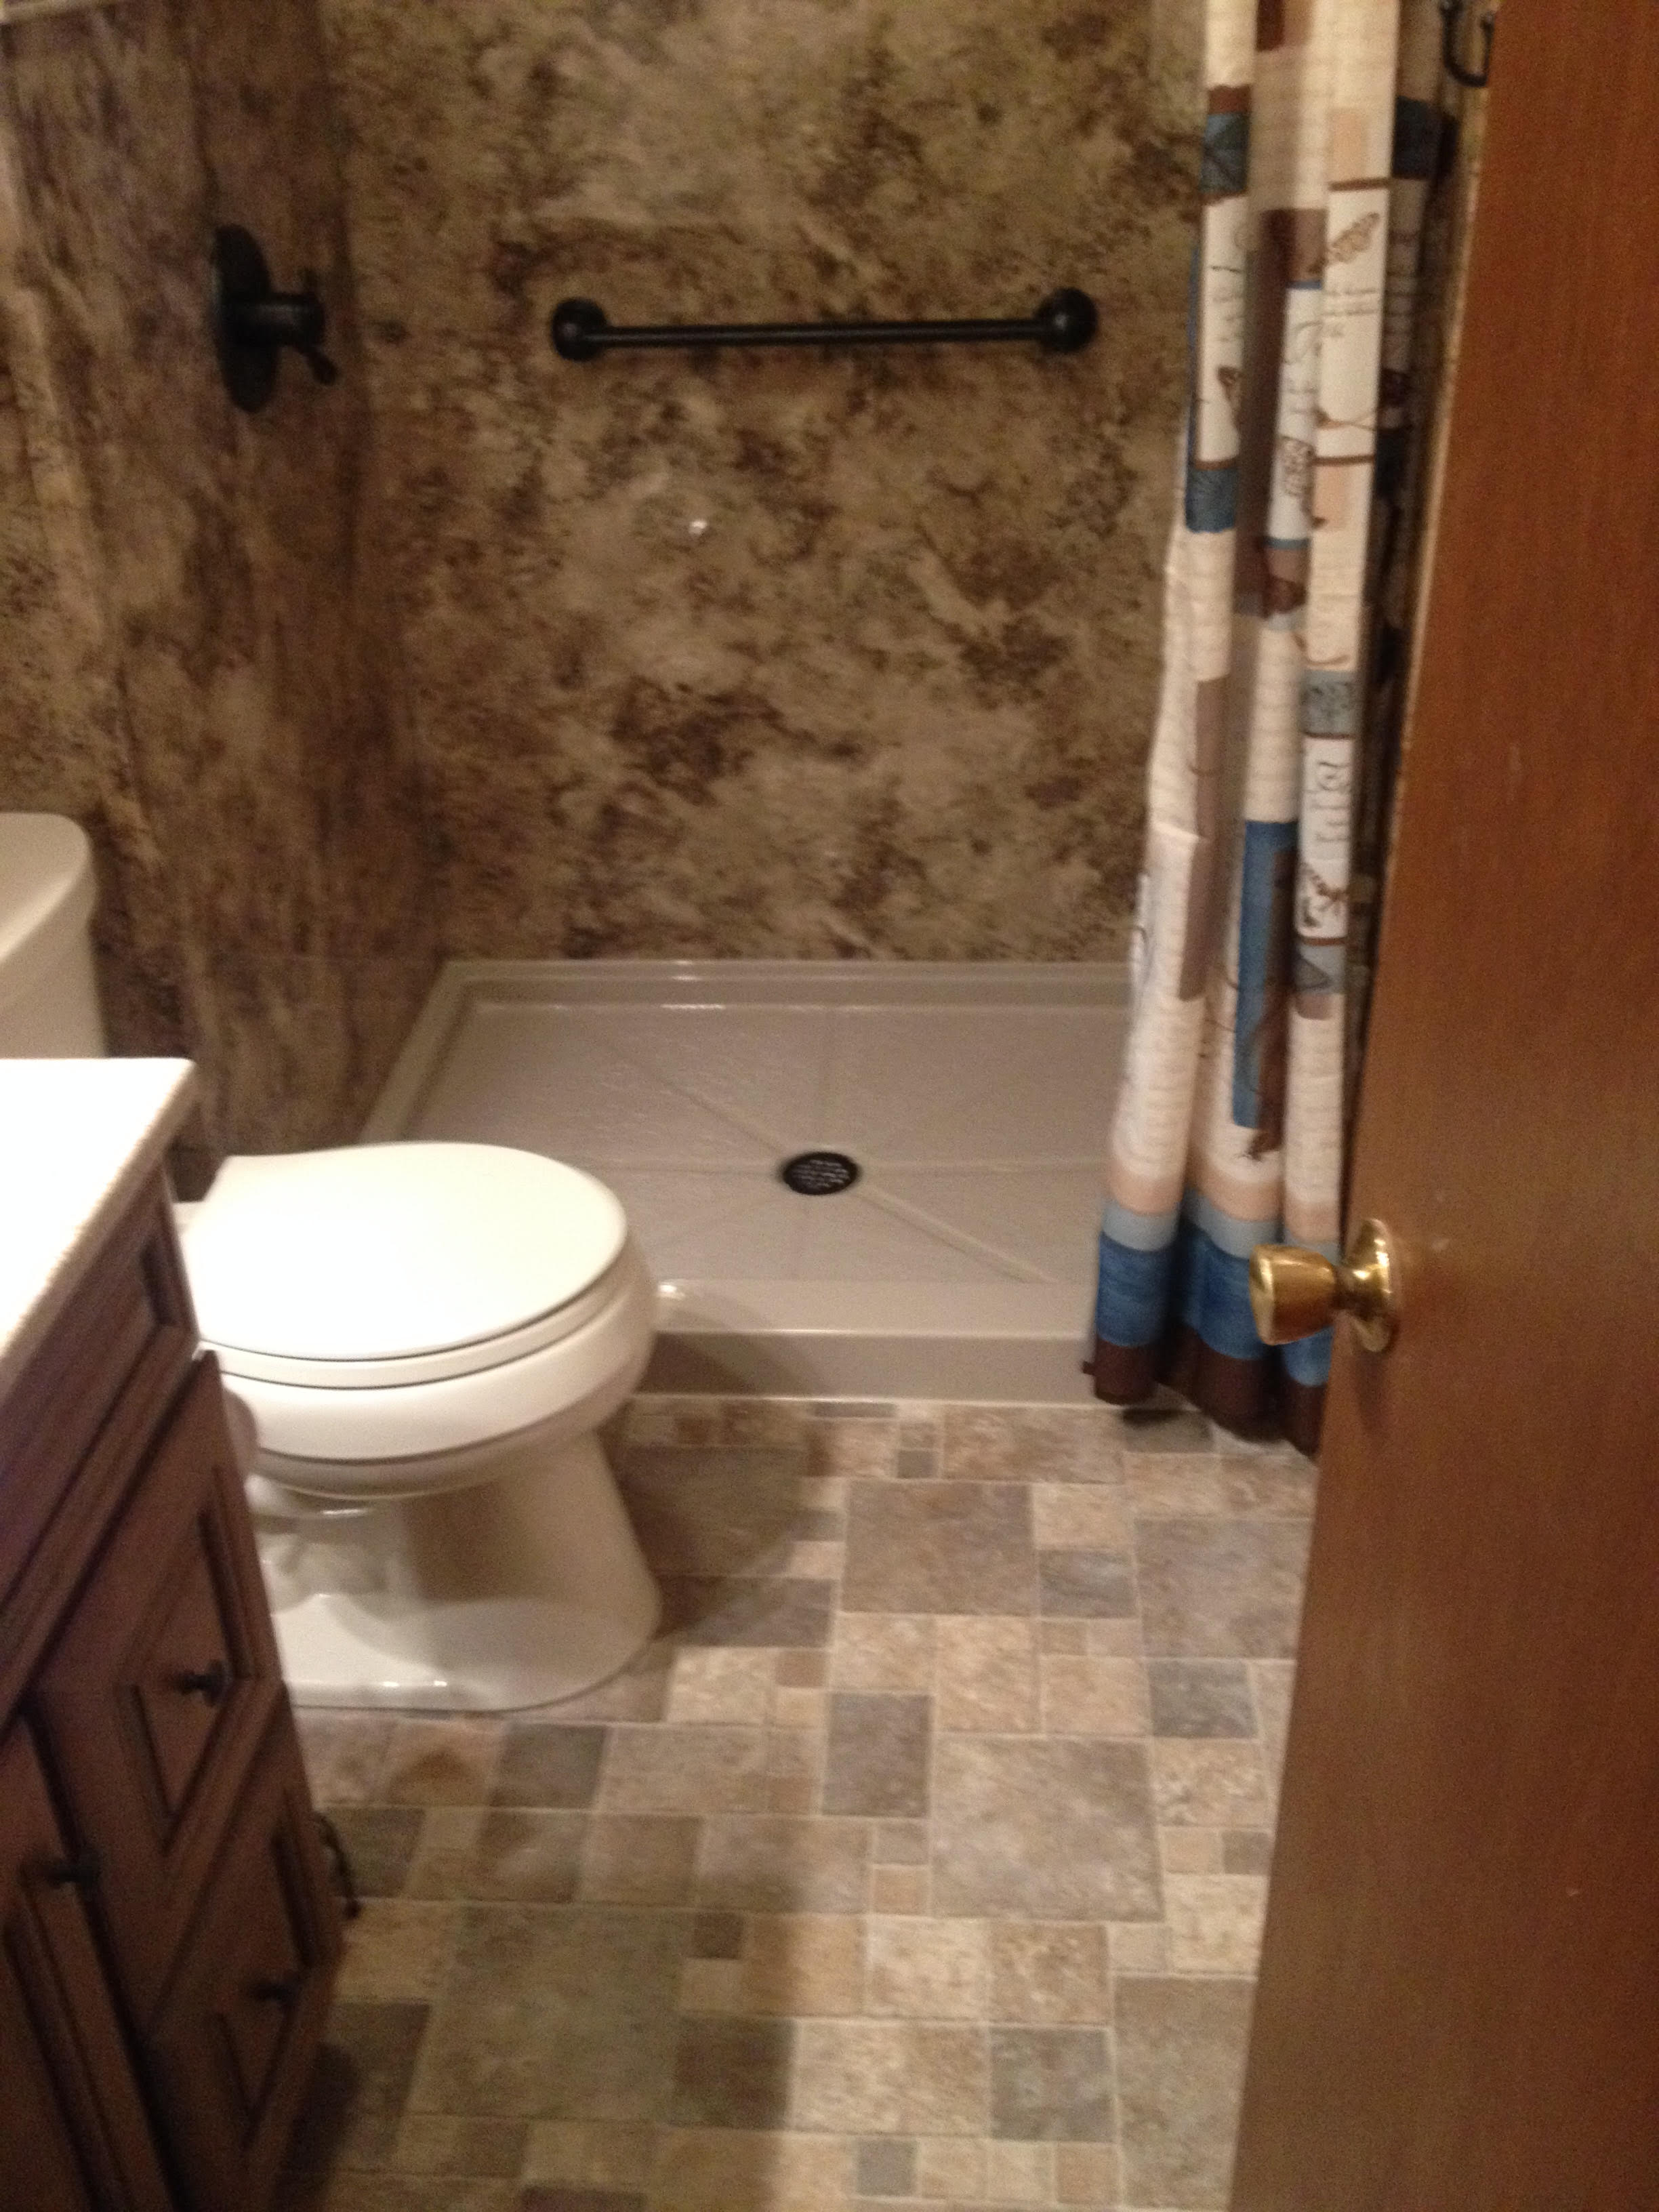 Bathroom Remodeling Plumbing In Stark Summit County Ohio - Bathroom remodeling canton ohio